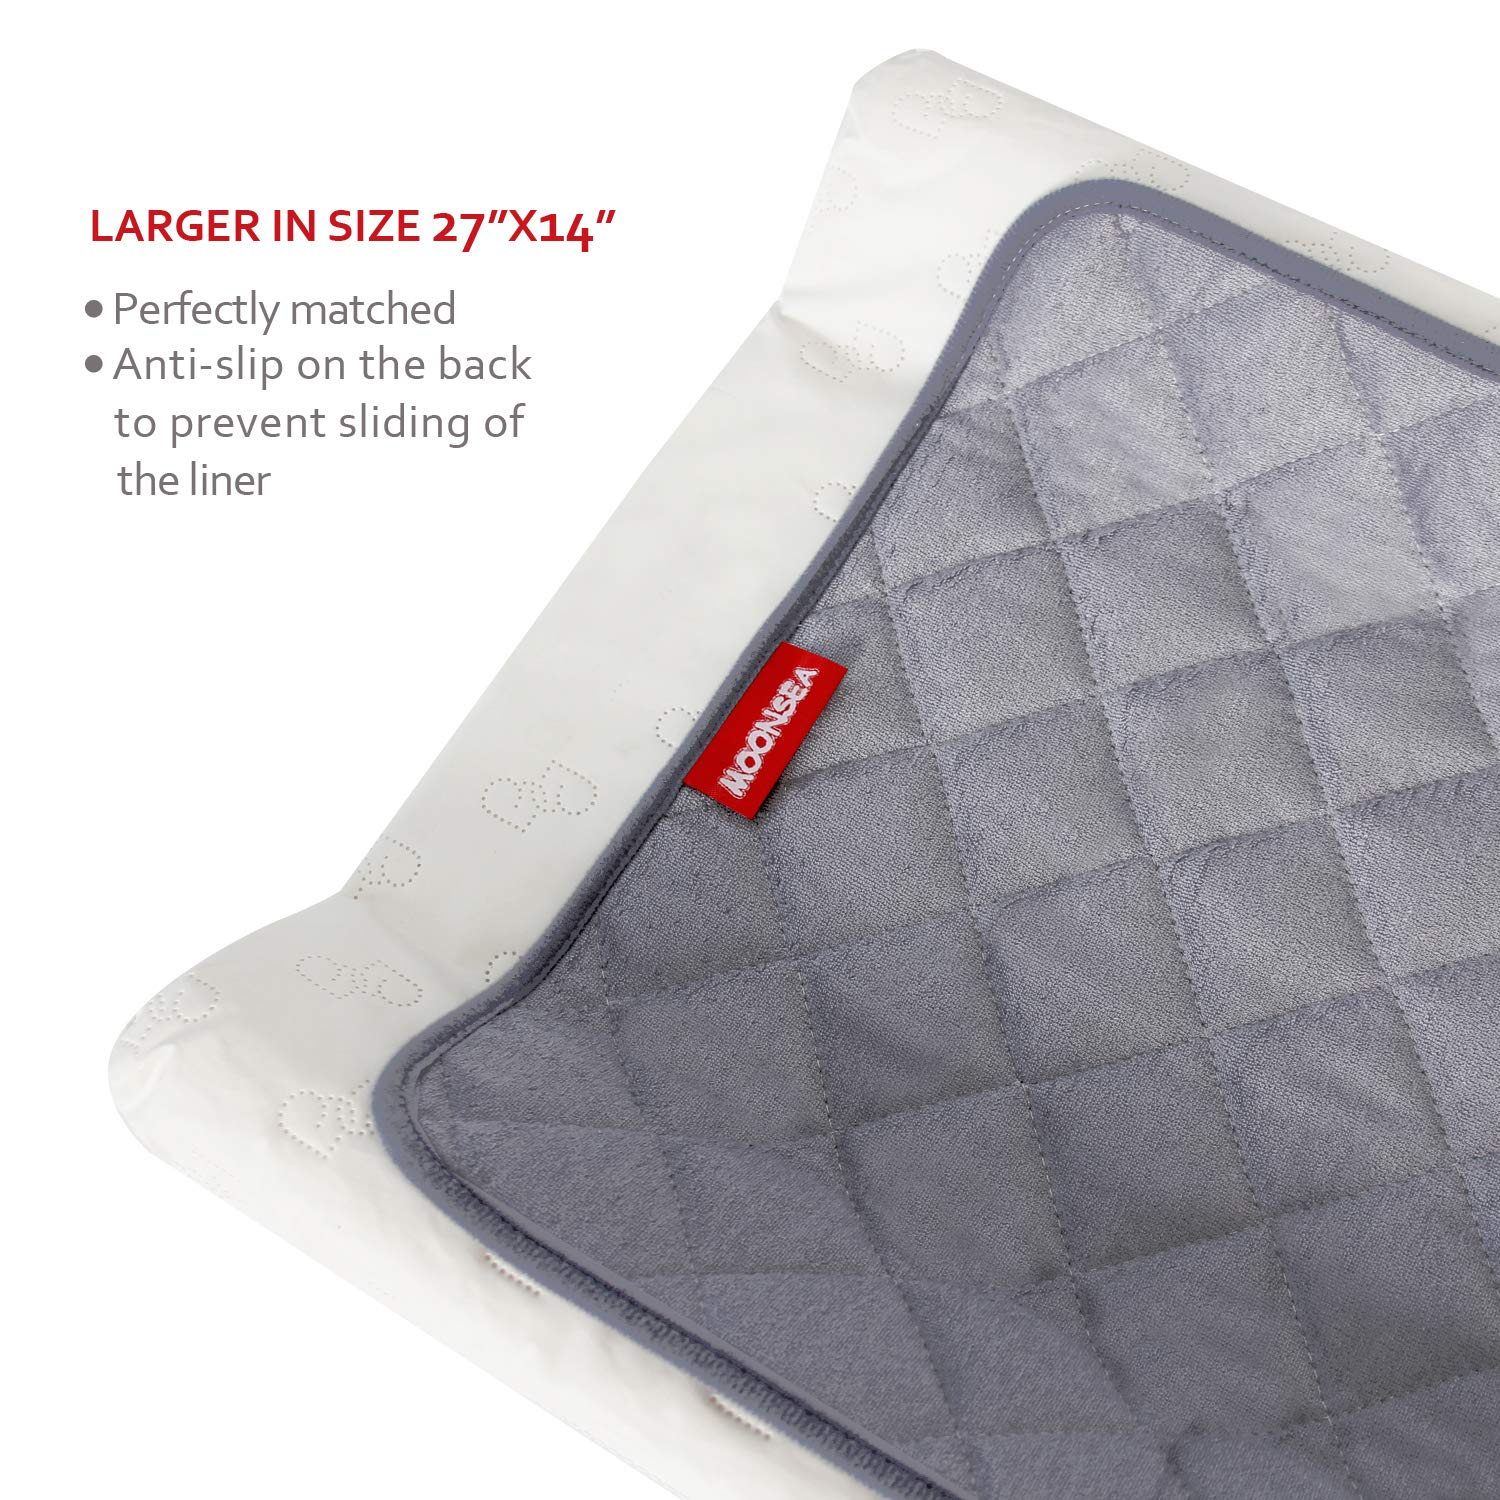 """3 Pack Extra Thick Large Size 14/""""x 27/""""Changing Pad Liners Grey Waterproof Washable Reusable Changing Mats Sheet Protector Waterproof Changing Pad Liners Bamboo Terry Quilted with Non-Slip Back"""